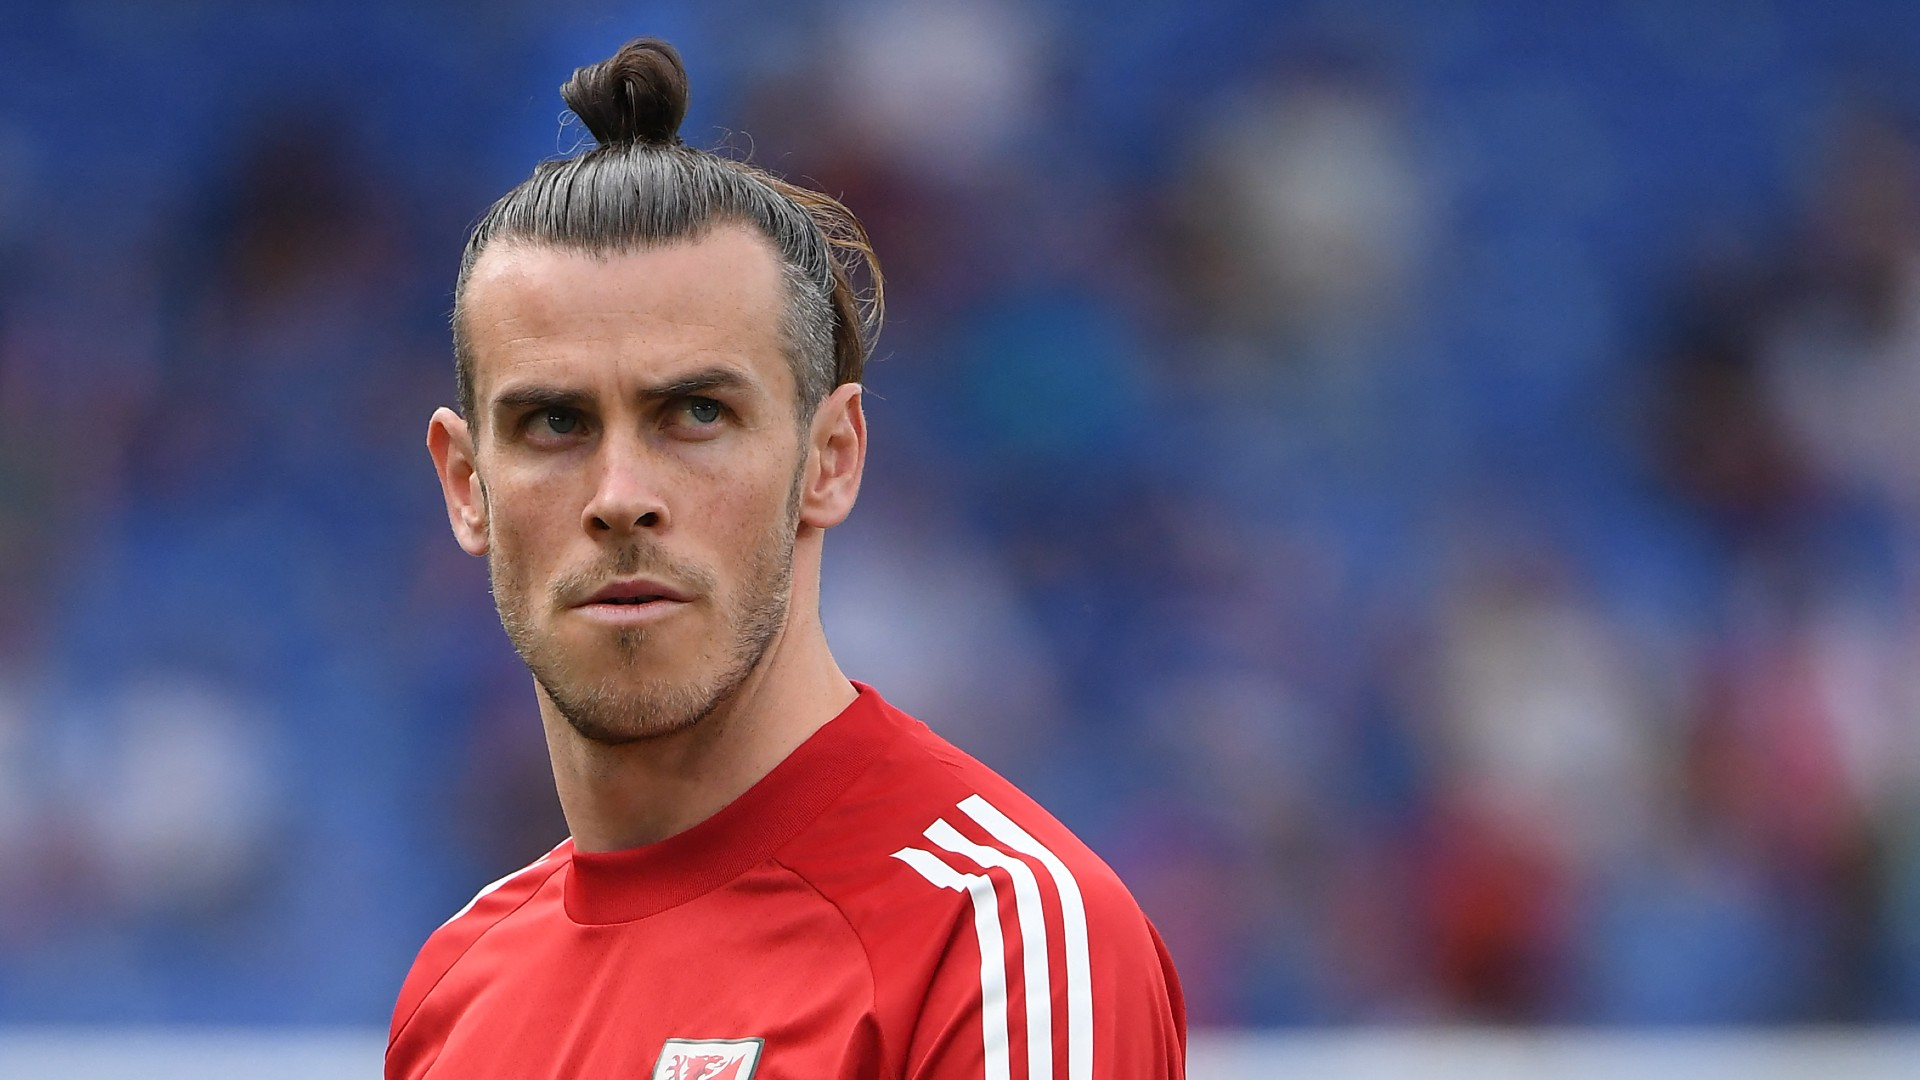 'I'll continue with Wales until the day I stop playing' - Bale clarifies future after walking out of interview post-Euro 2020 exit